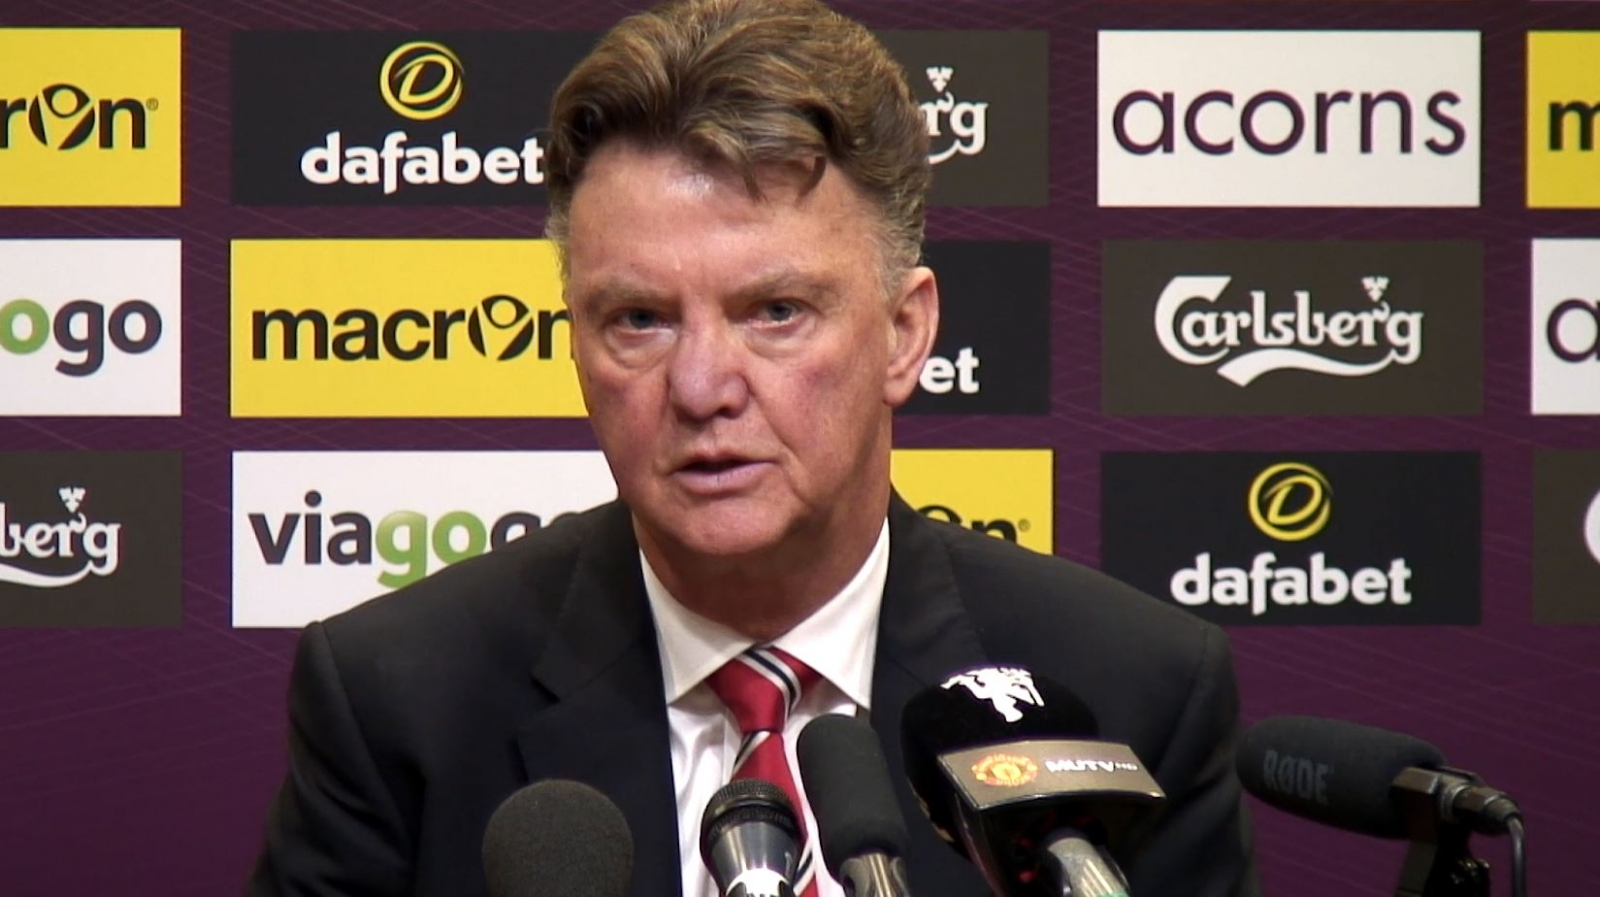 Louis van Gaal: Manchester United not capable of challenging for Premier League title